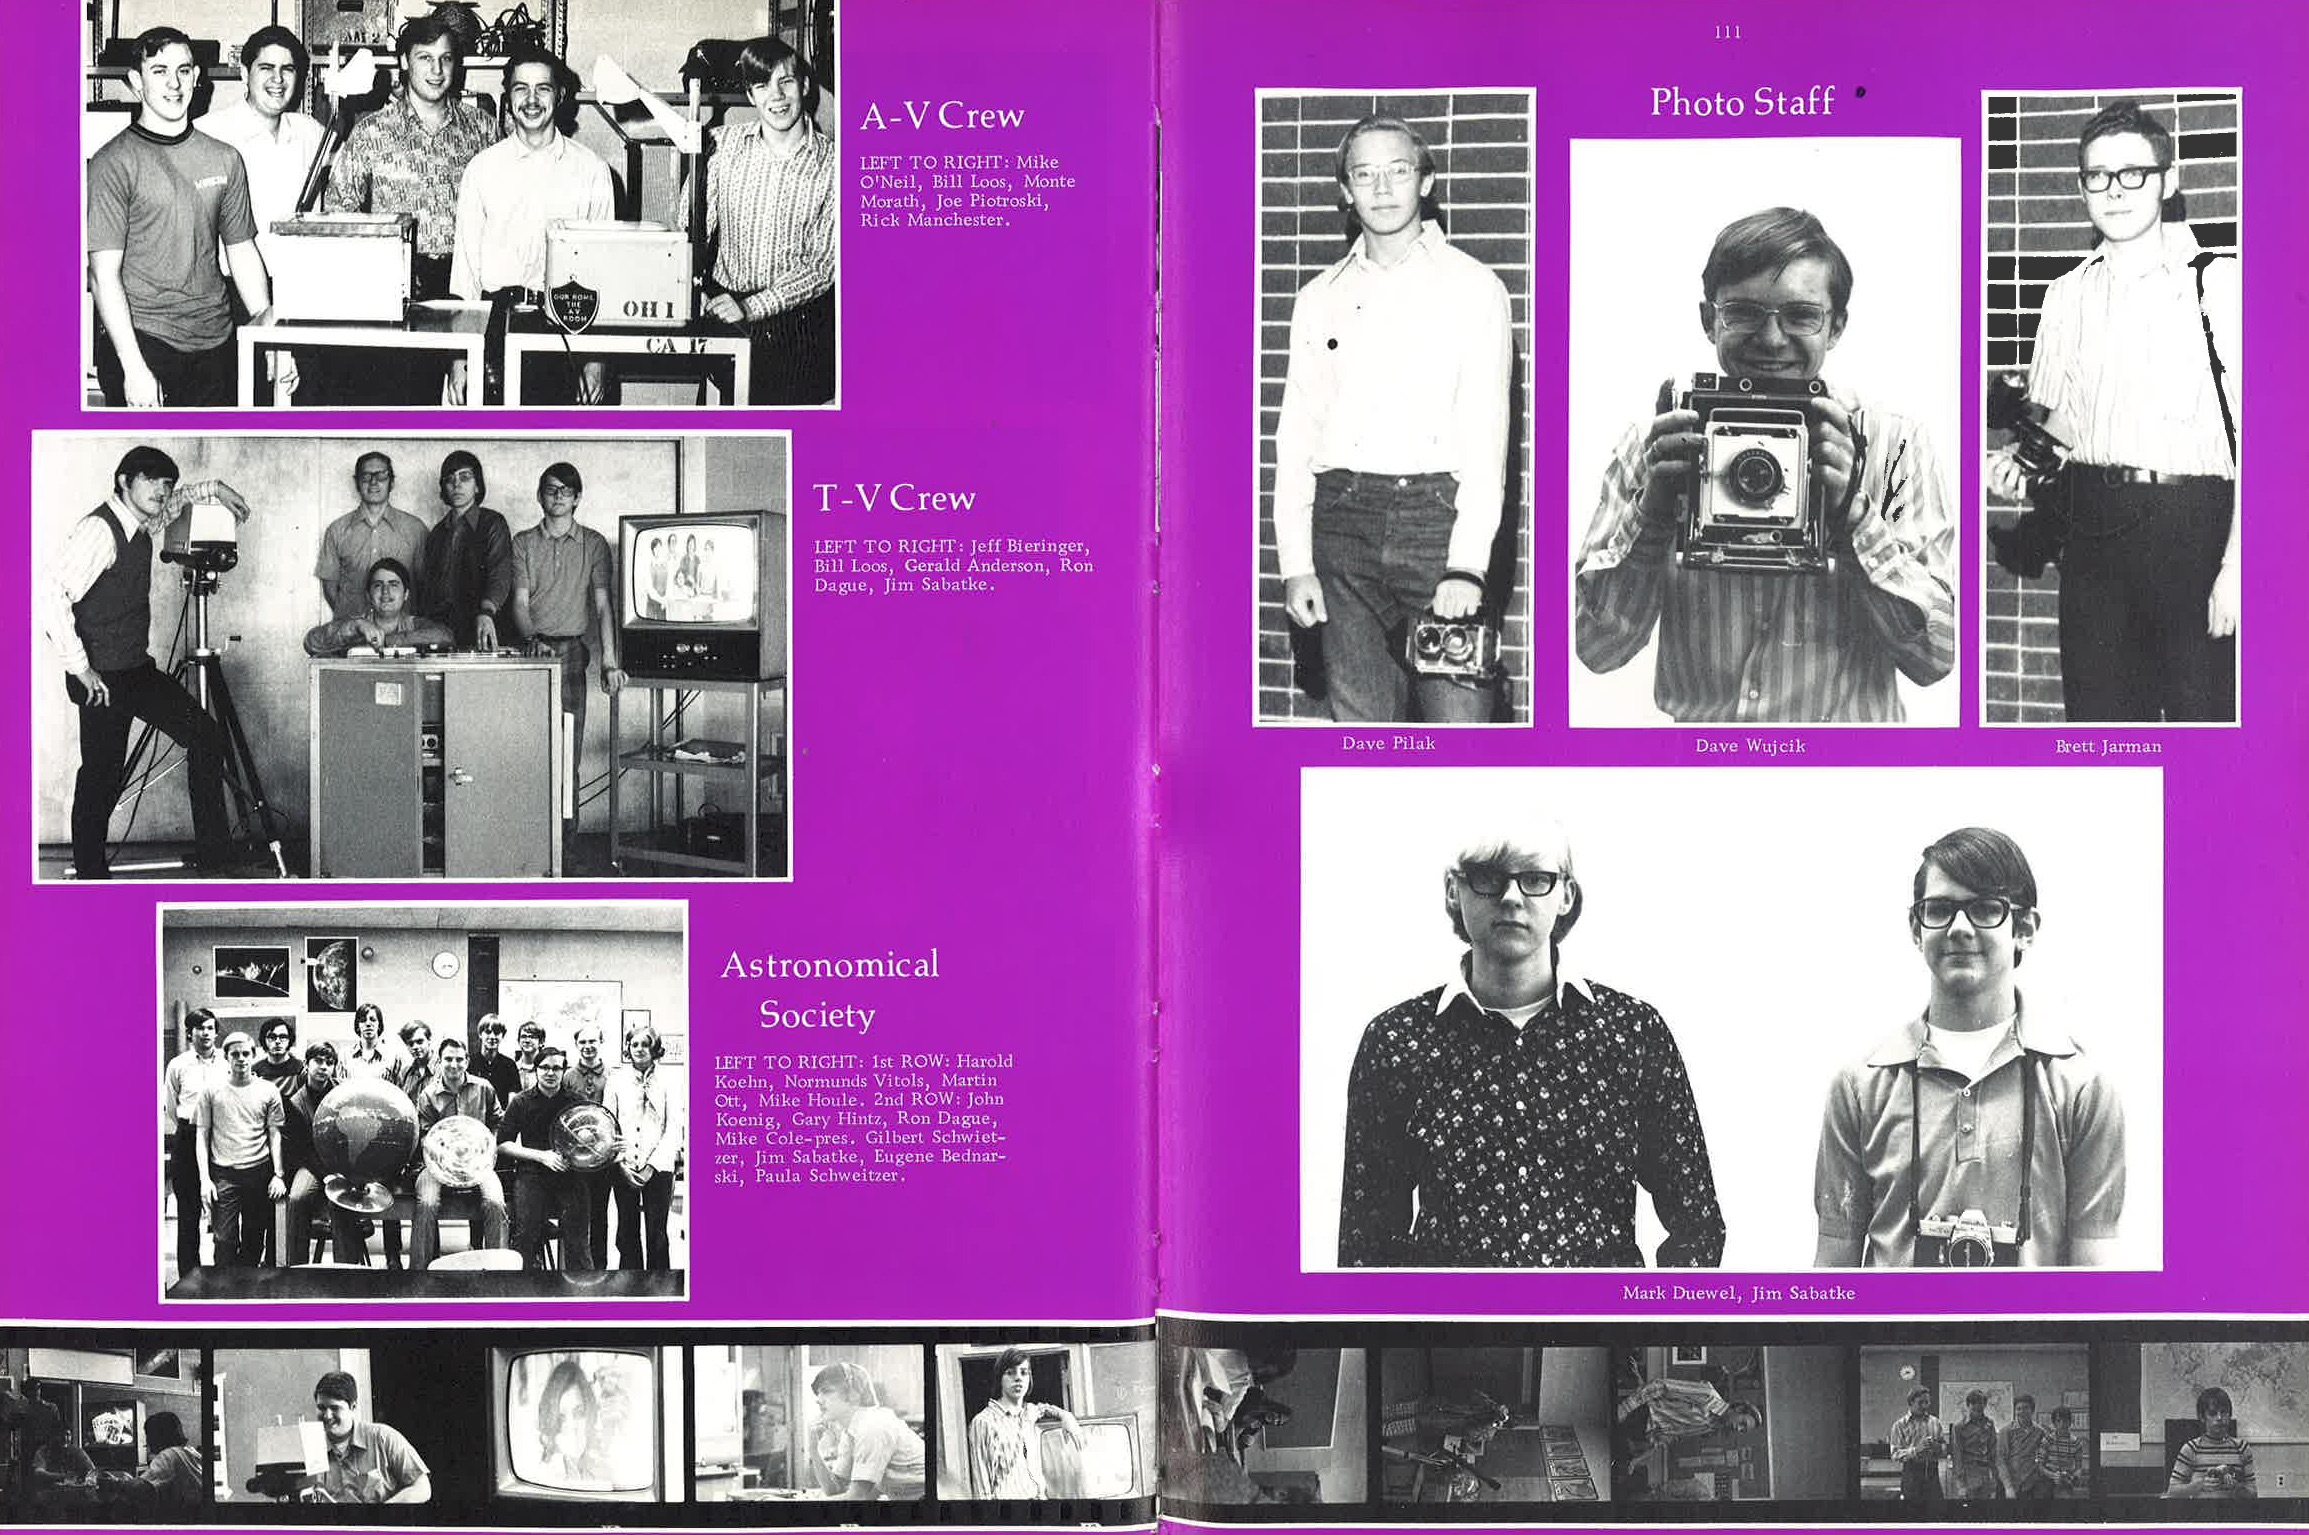 1972_Yearbook_110-111.jpg